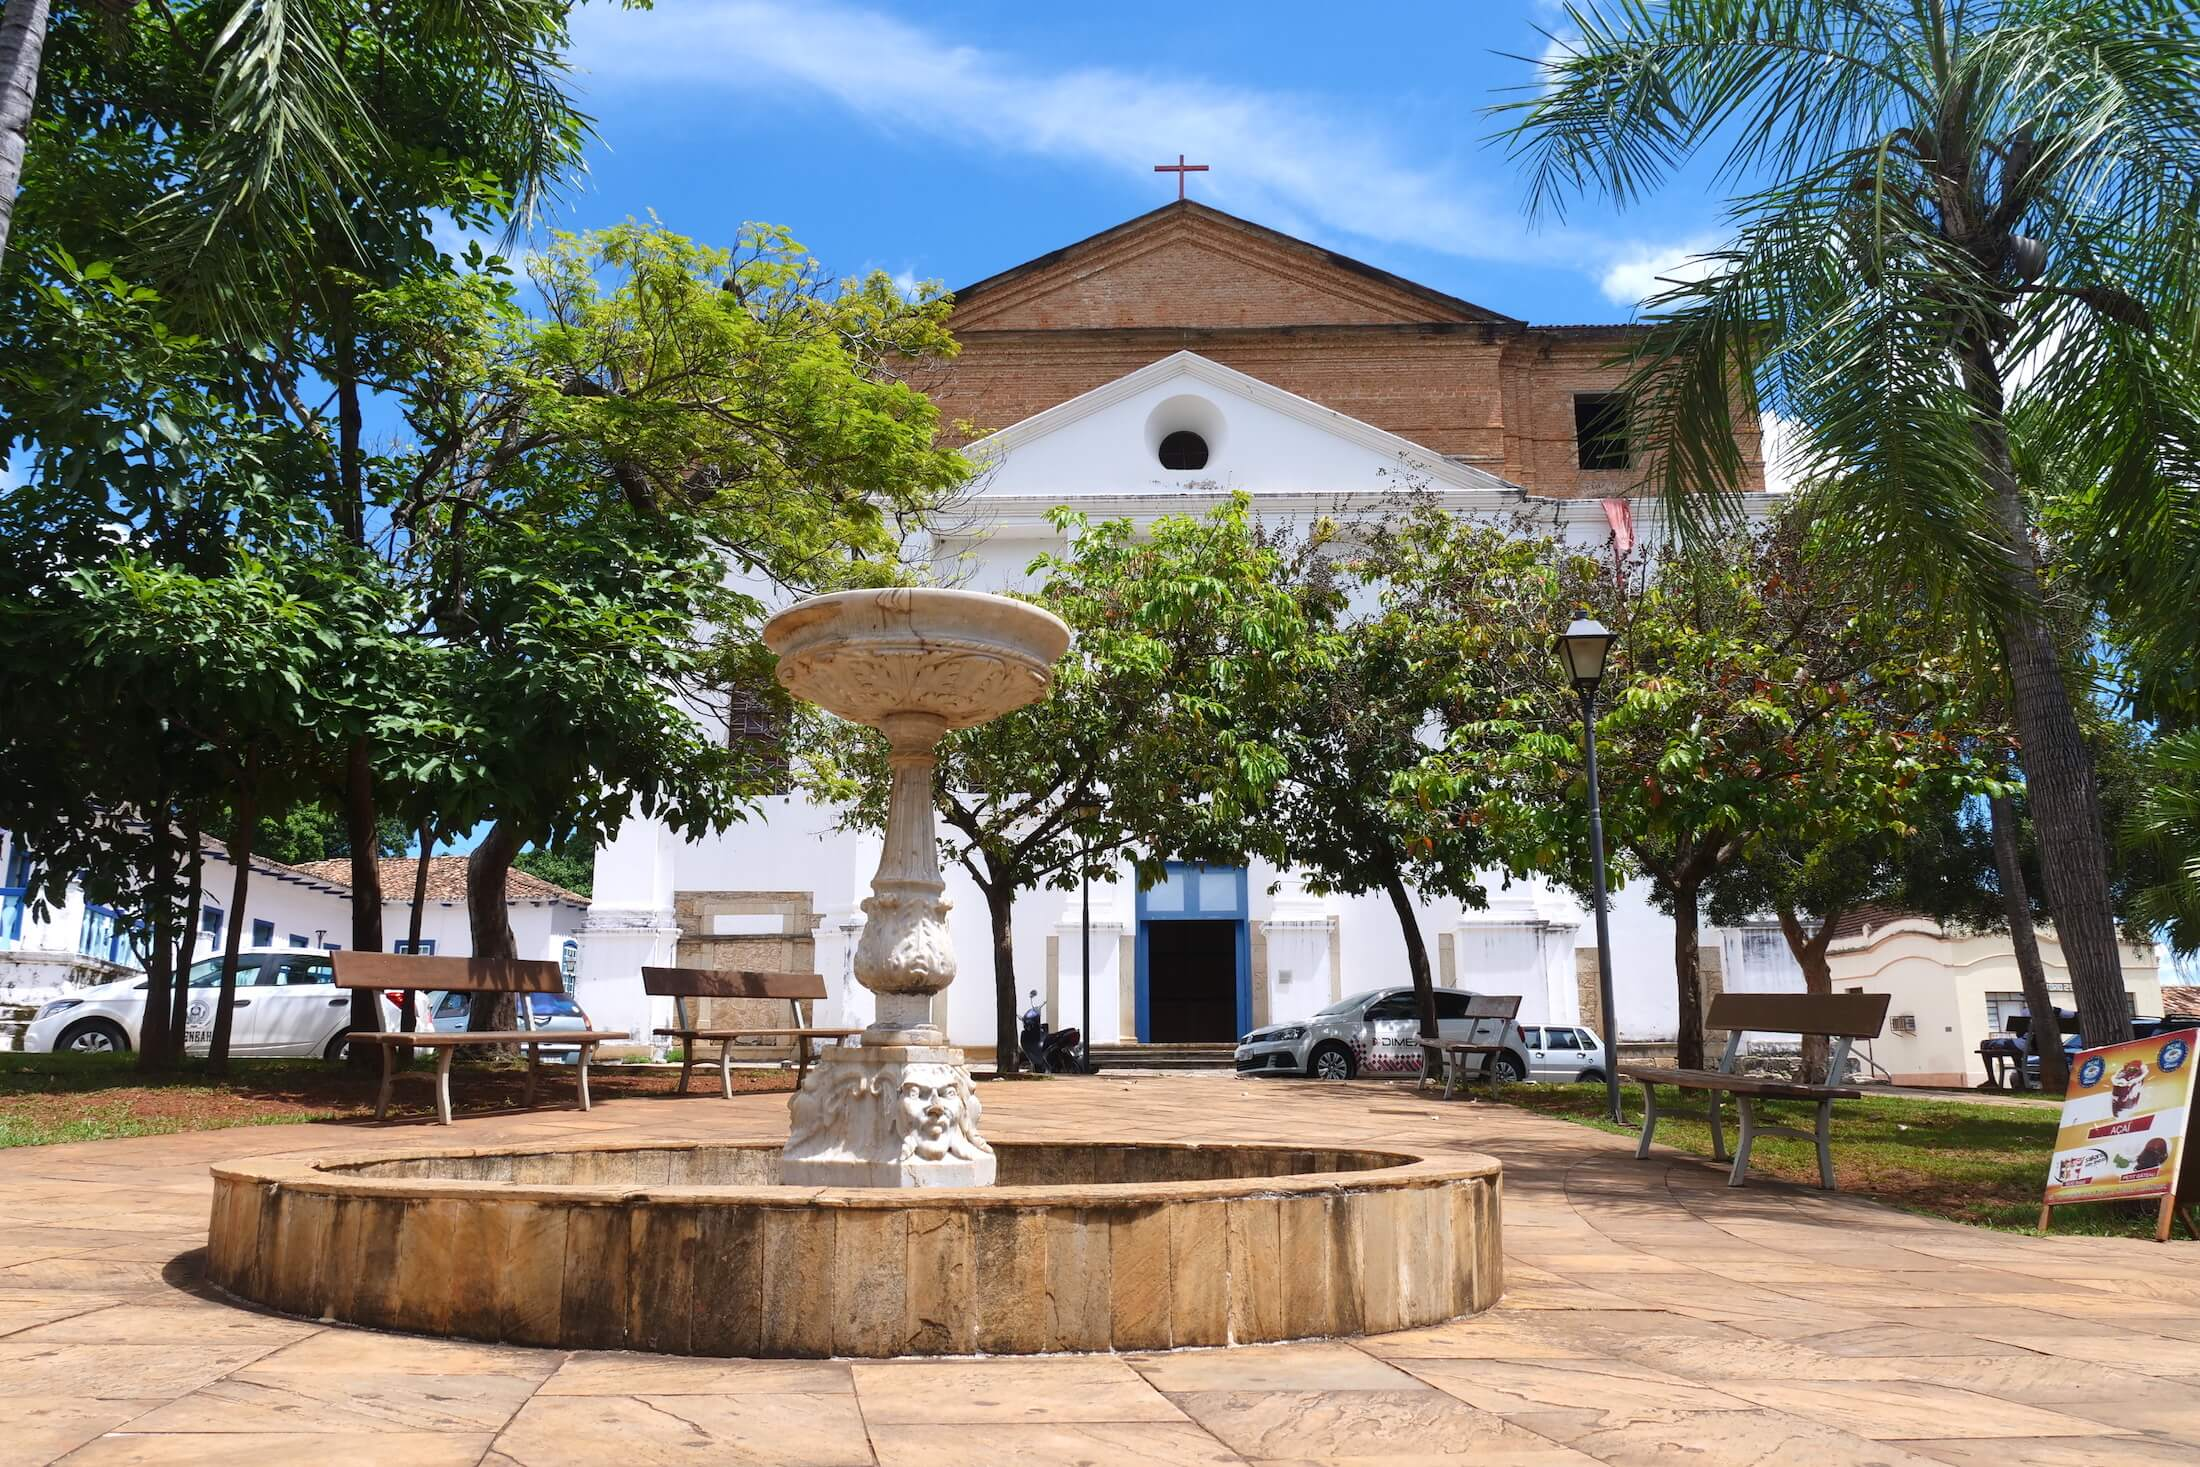 Goias town is the place to go to eat Pequi in Brazil